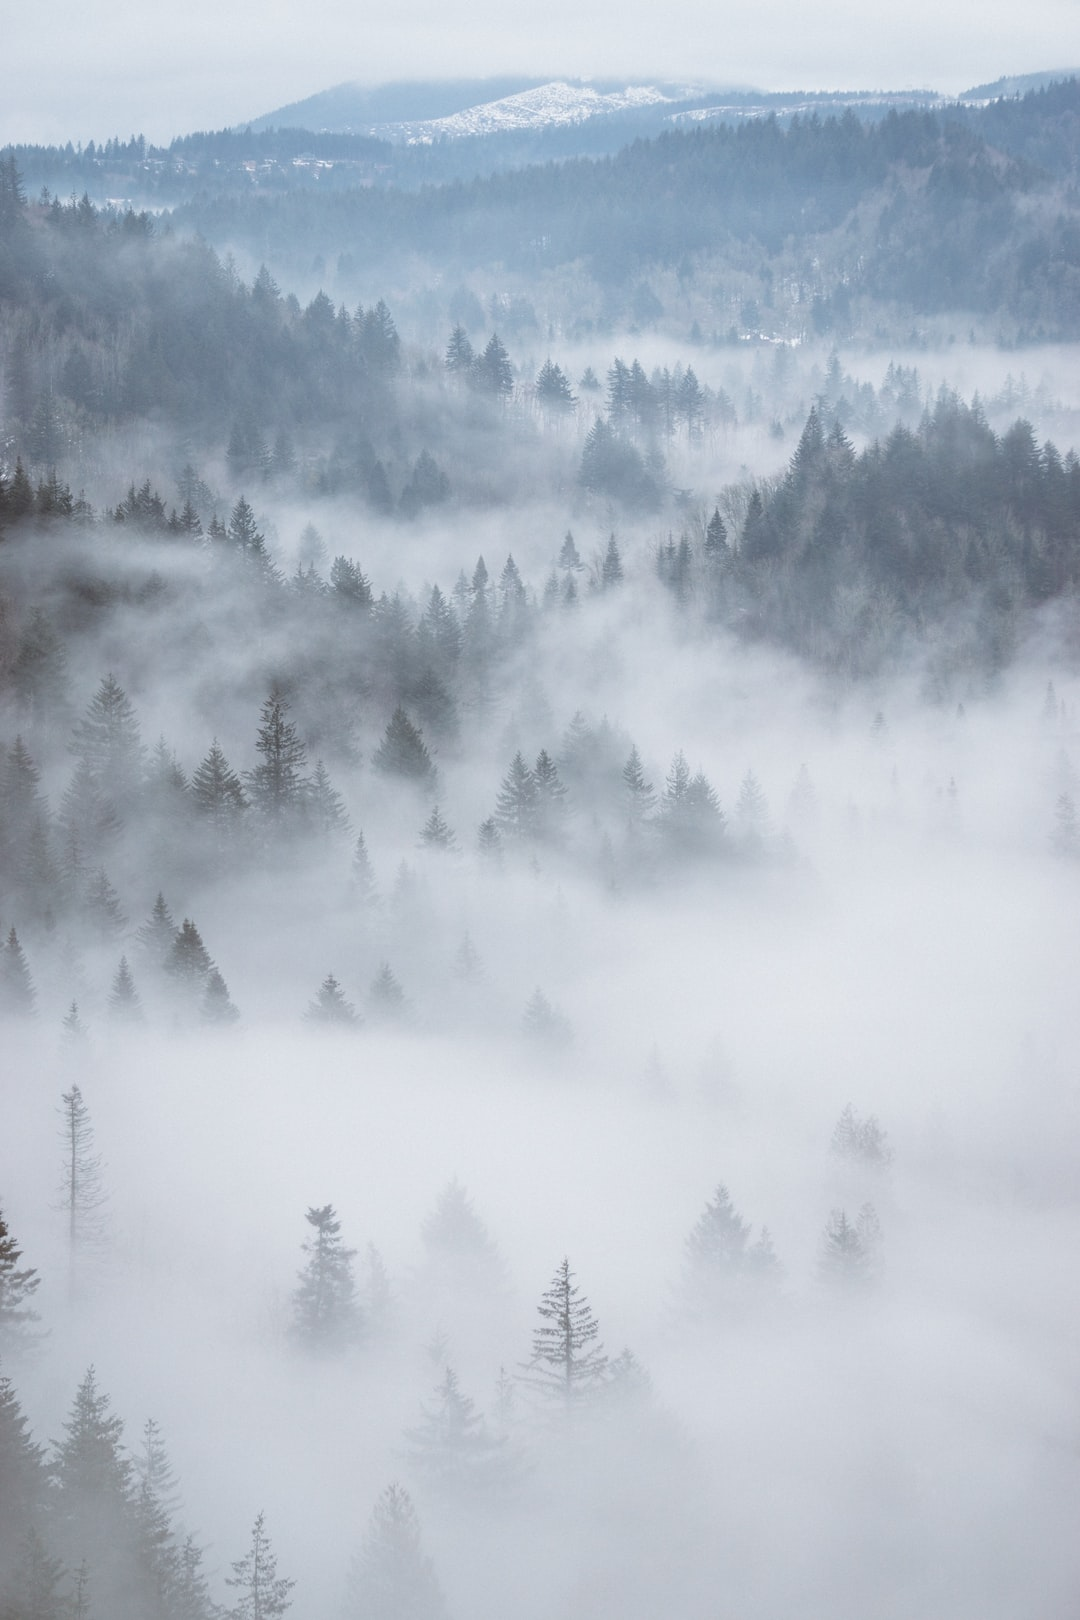 Fog covering the Columbia River Gorge, near Portland, OR.